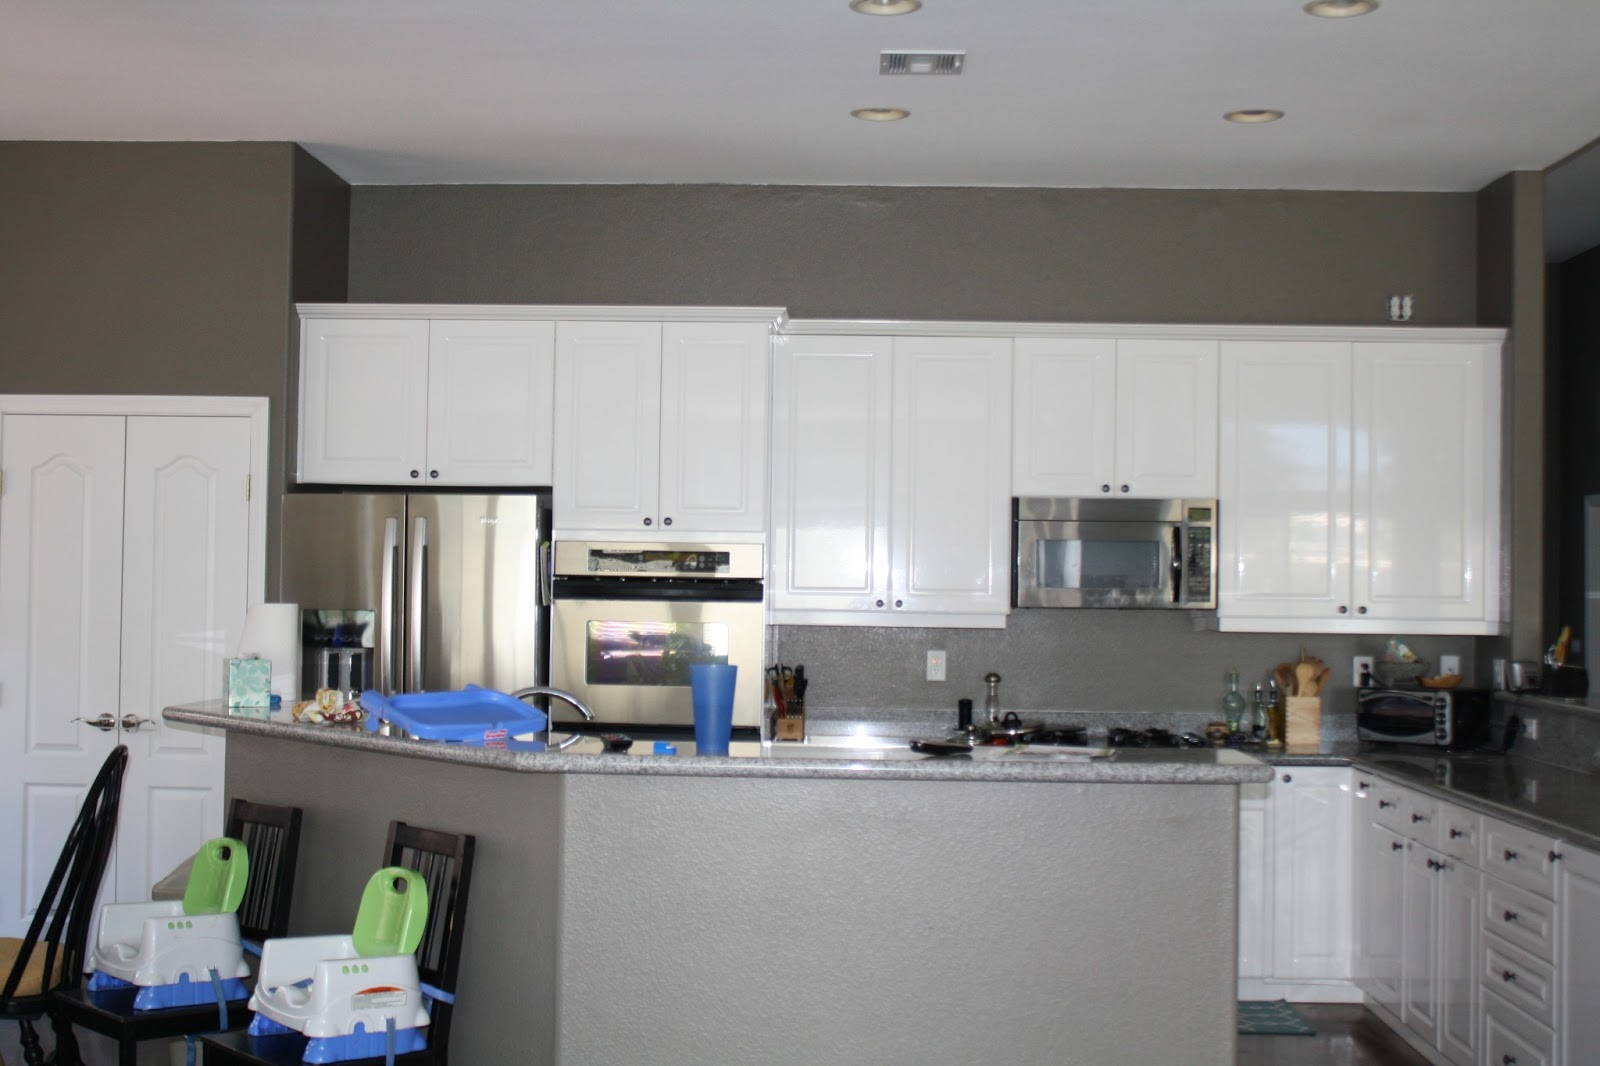 How To Paint Kitchen Cabinets Without Streaks Summa Tiltonica